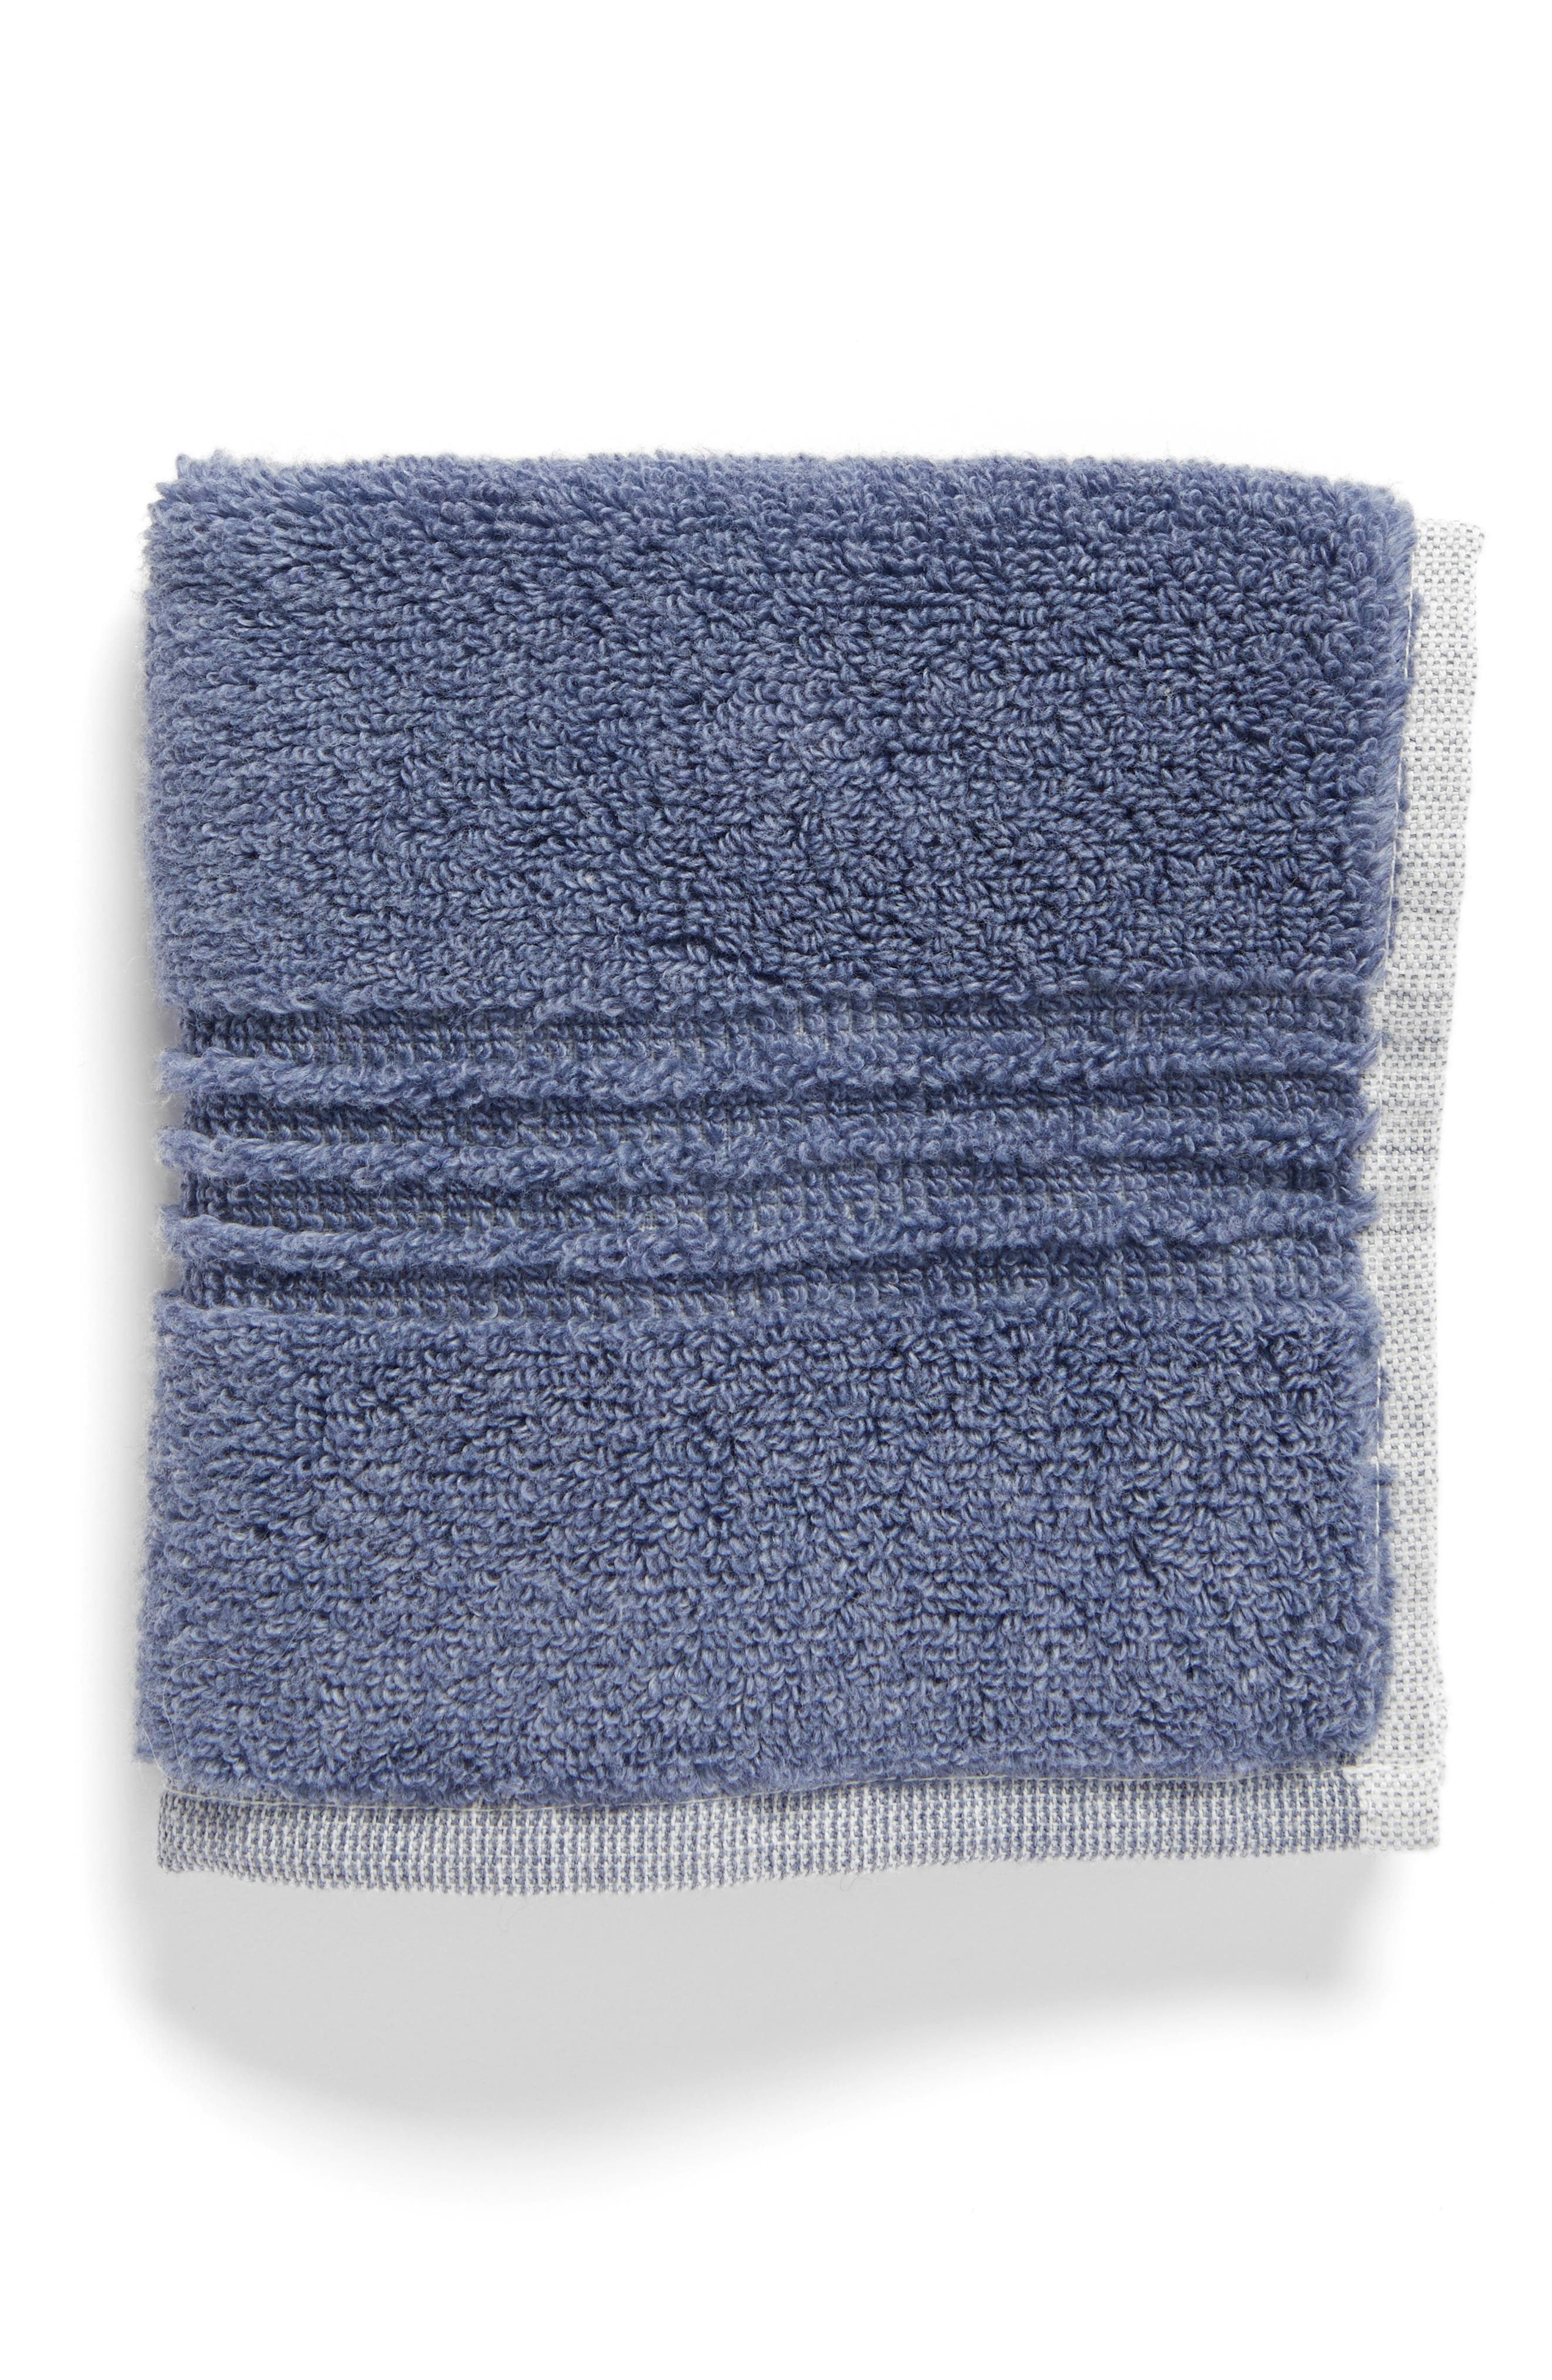 Nordstrom at Home Organic Hydrocotton Heathered Washcloth (2 for $17)